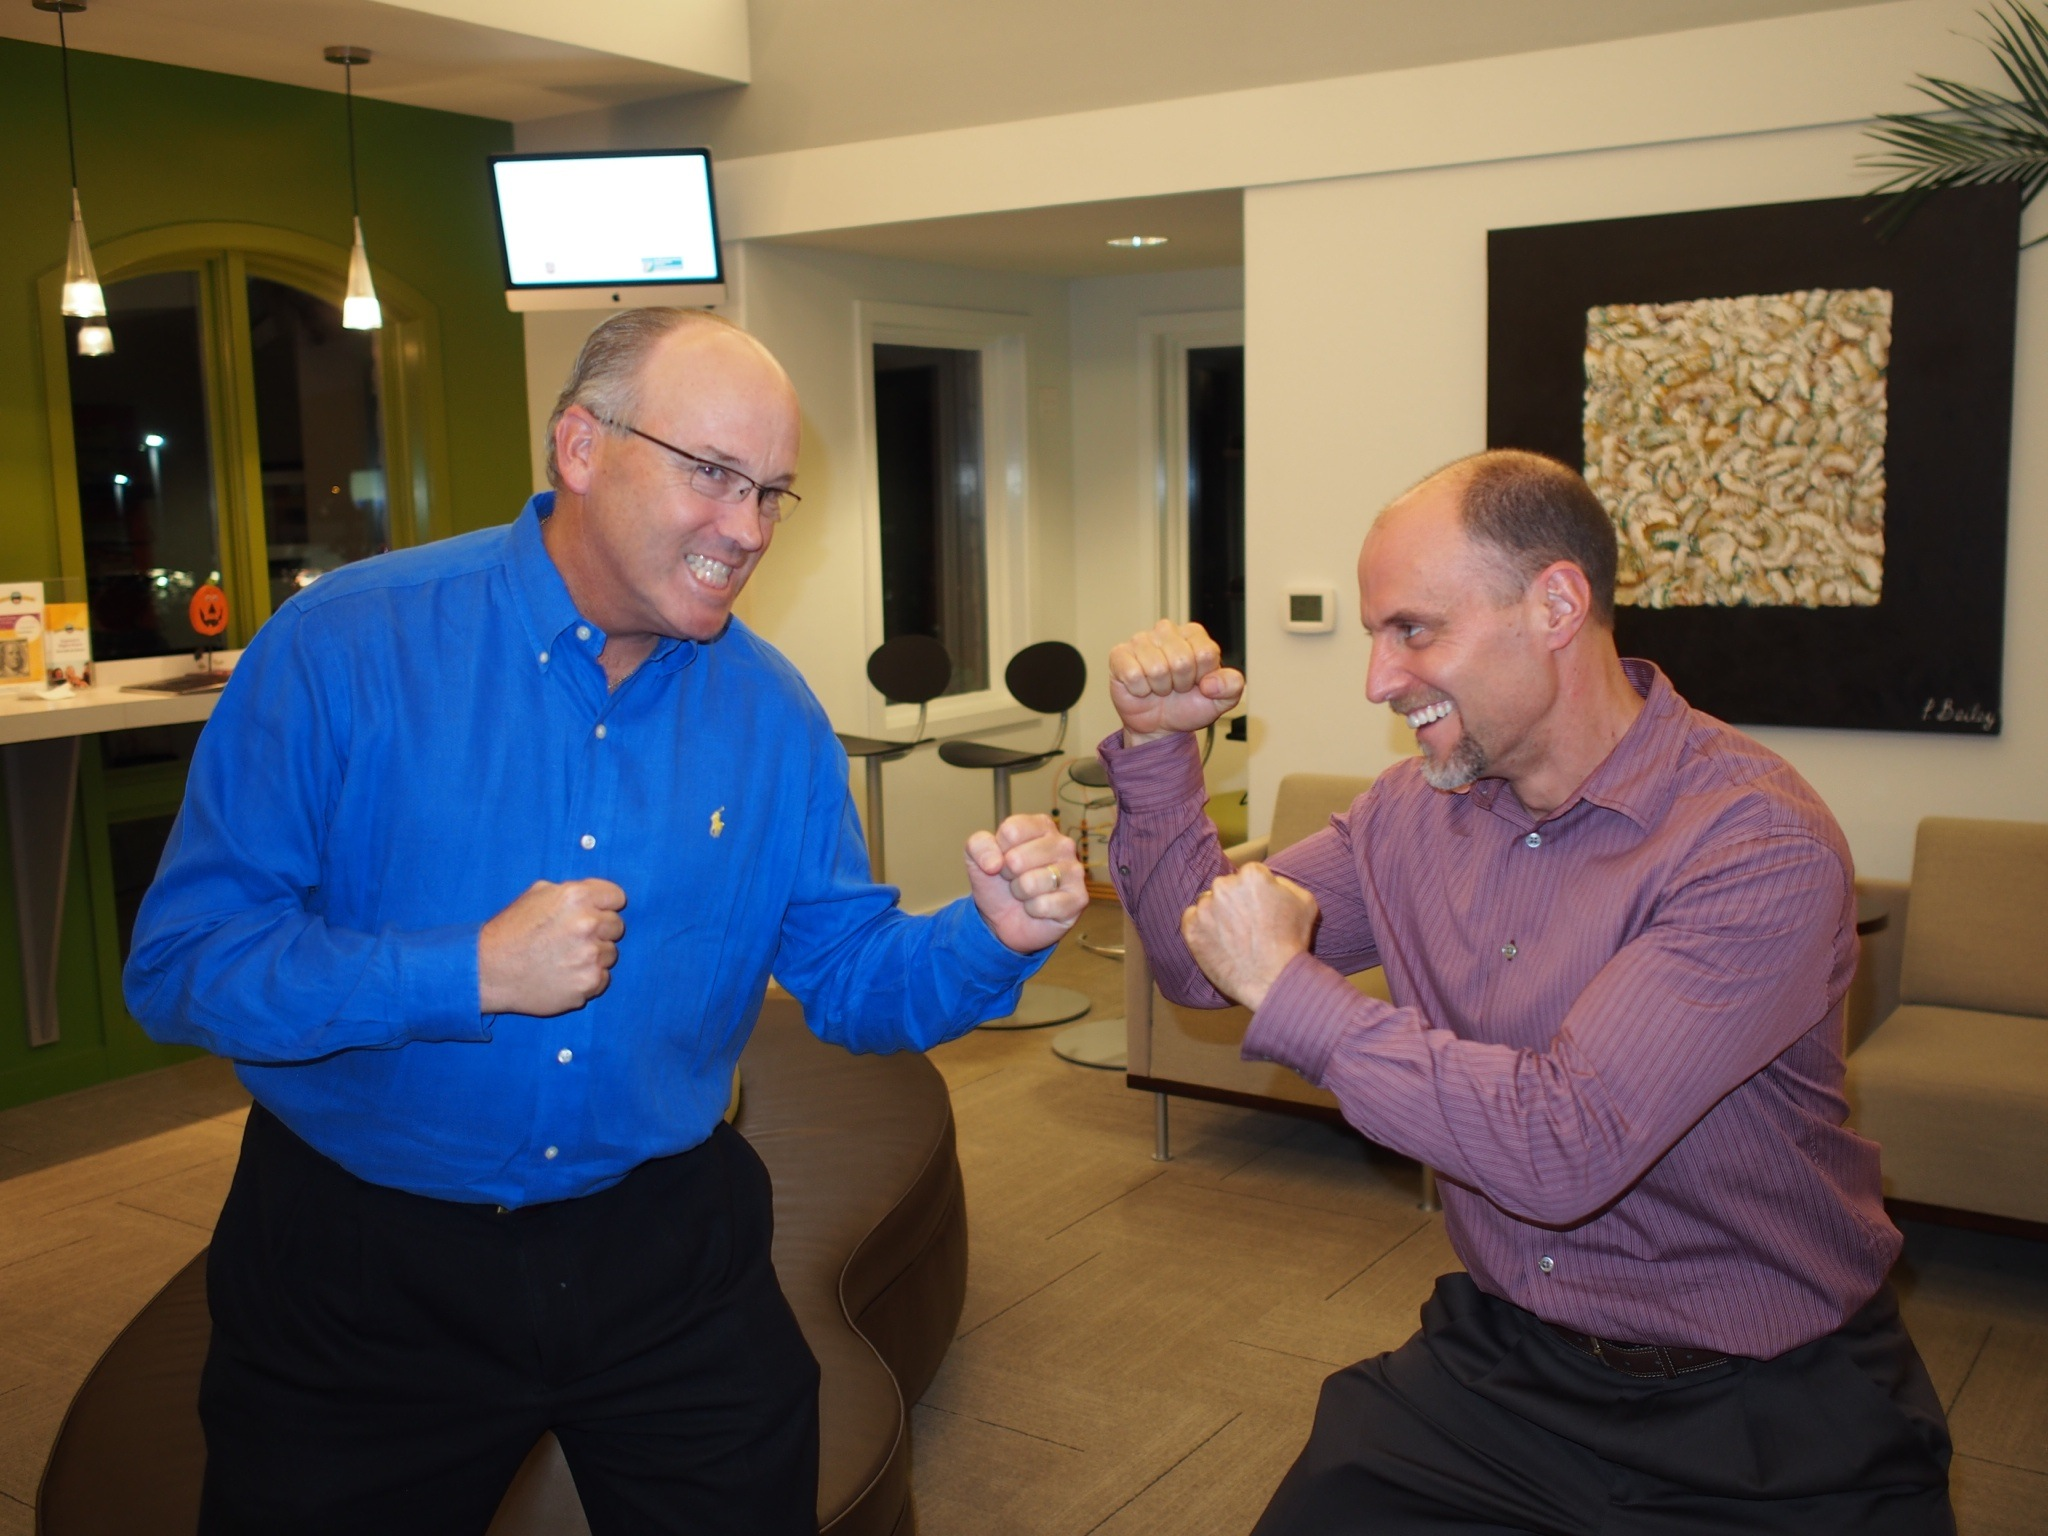 TOSC Members Dr. Colville and Dr. Salome demonstrate their desire to win The Great Debate at the next TOSC Annual Meeting in Austin, Feb. 21-23. Don't miss it!